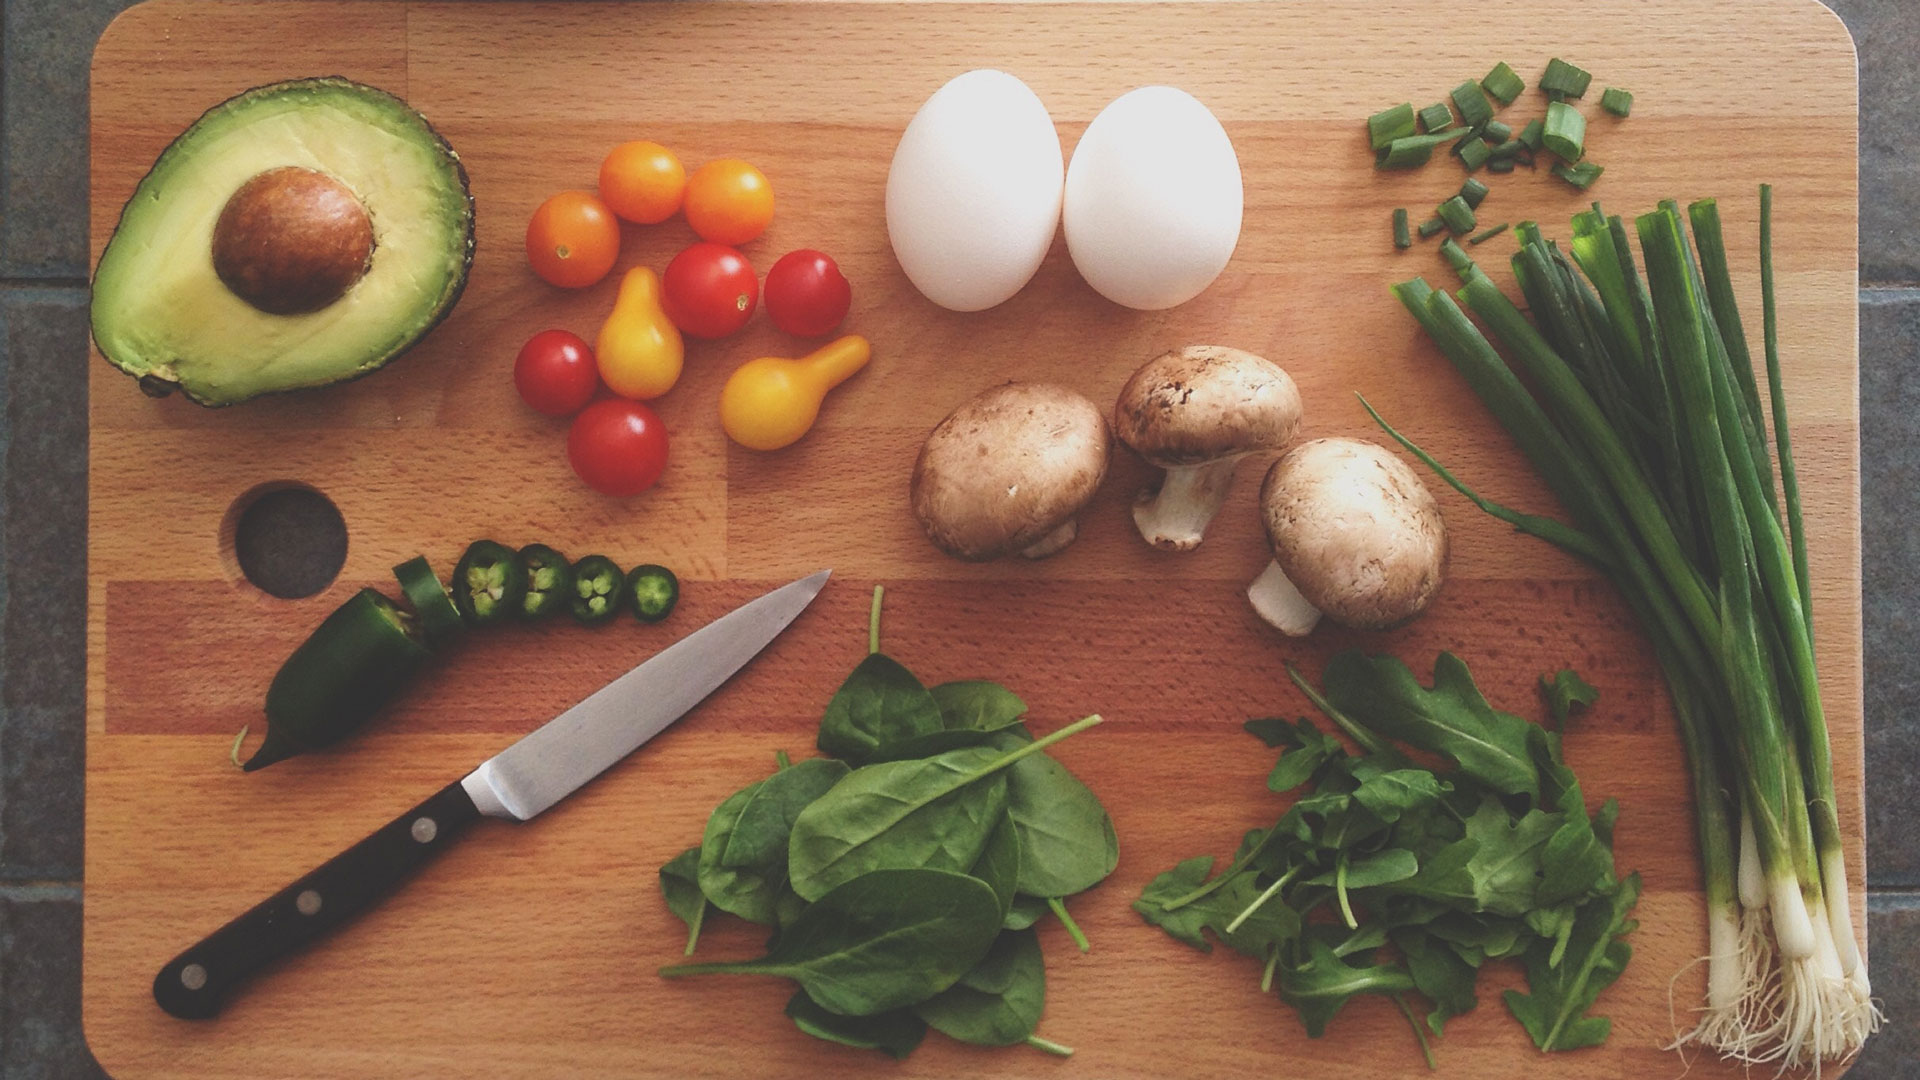 Chopping board with fresh vegetable